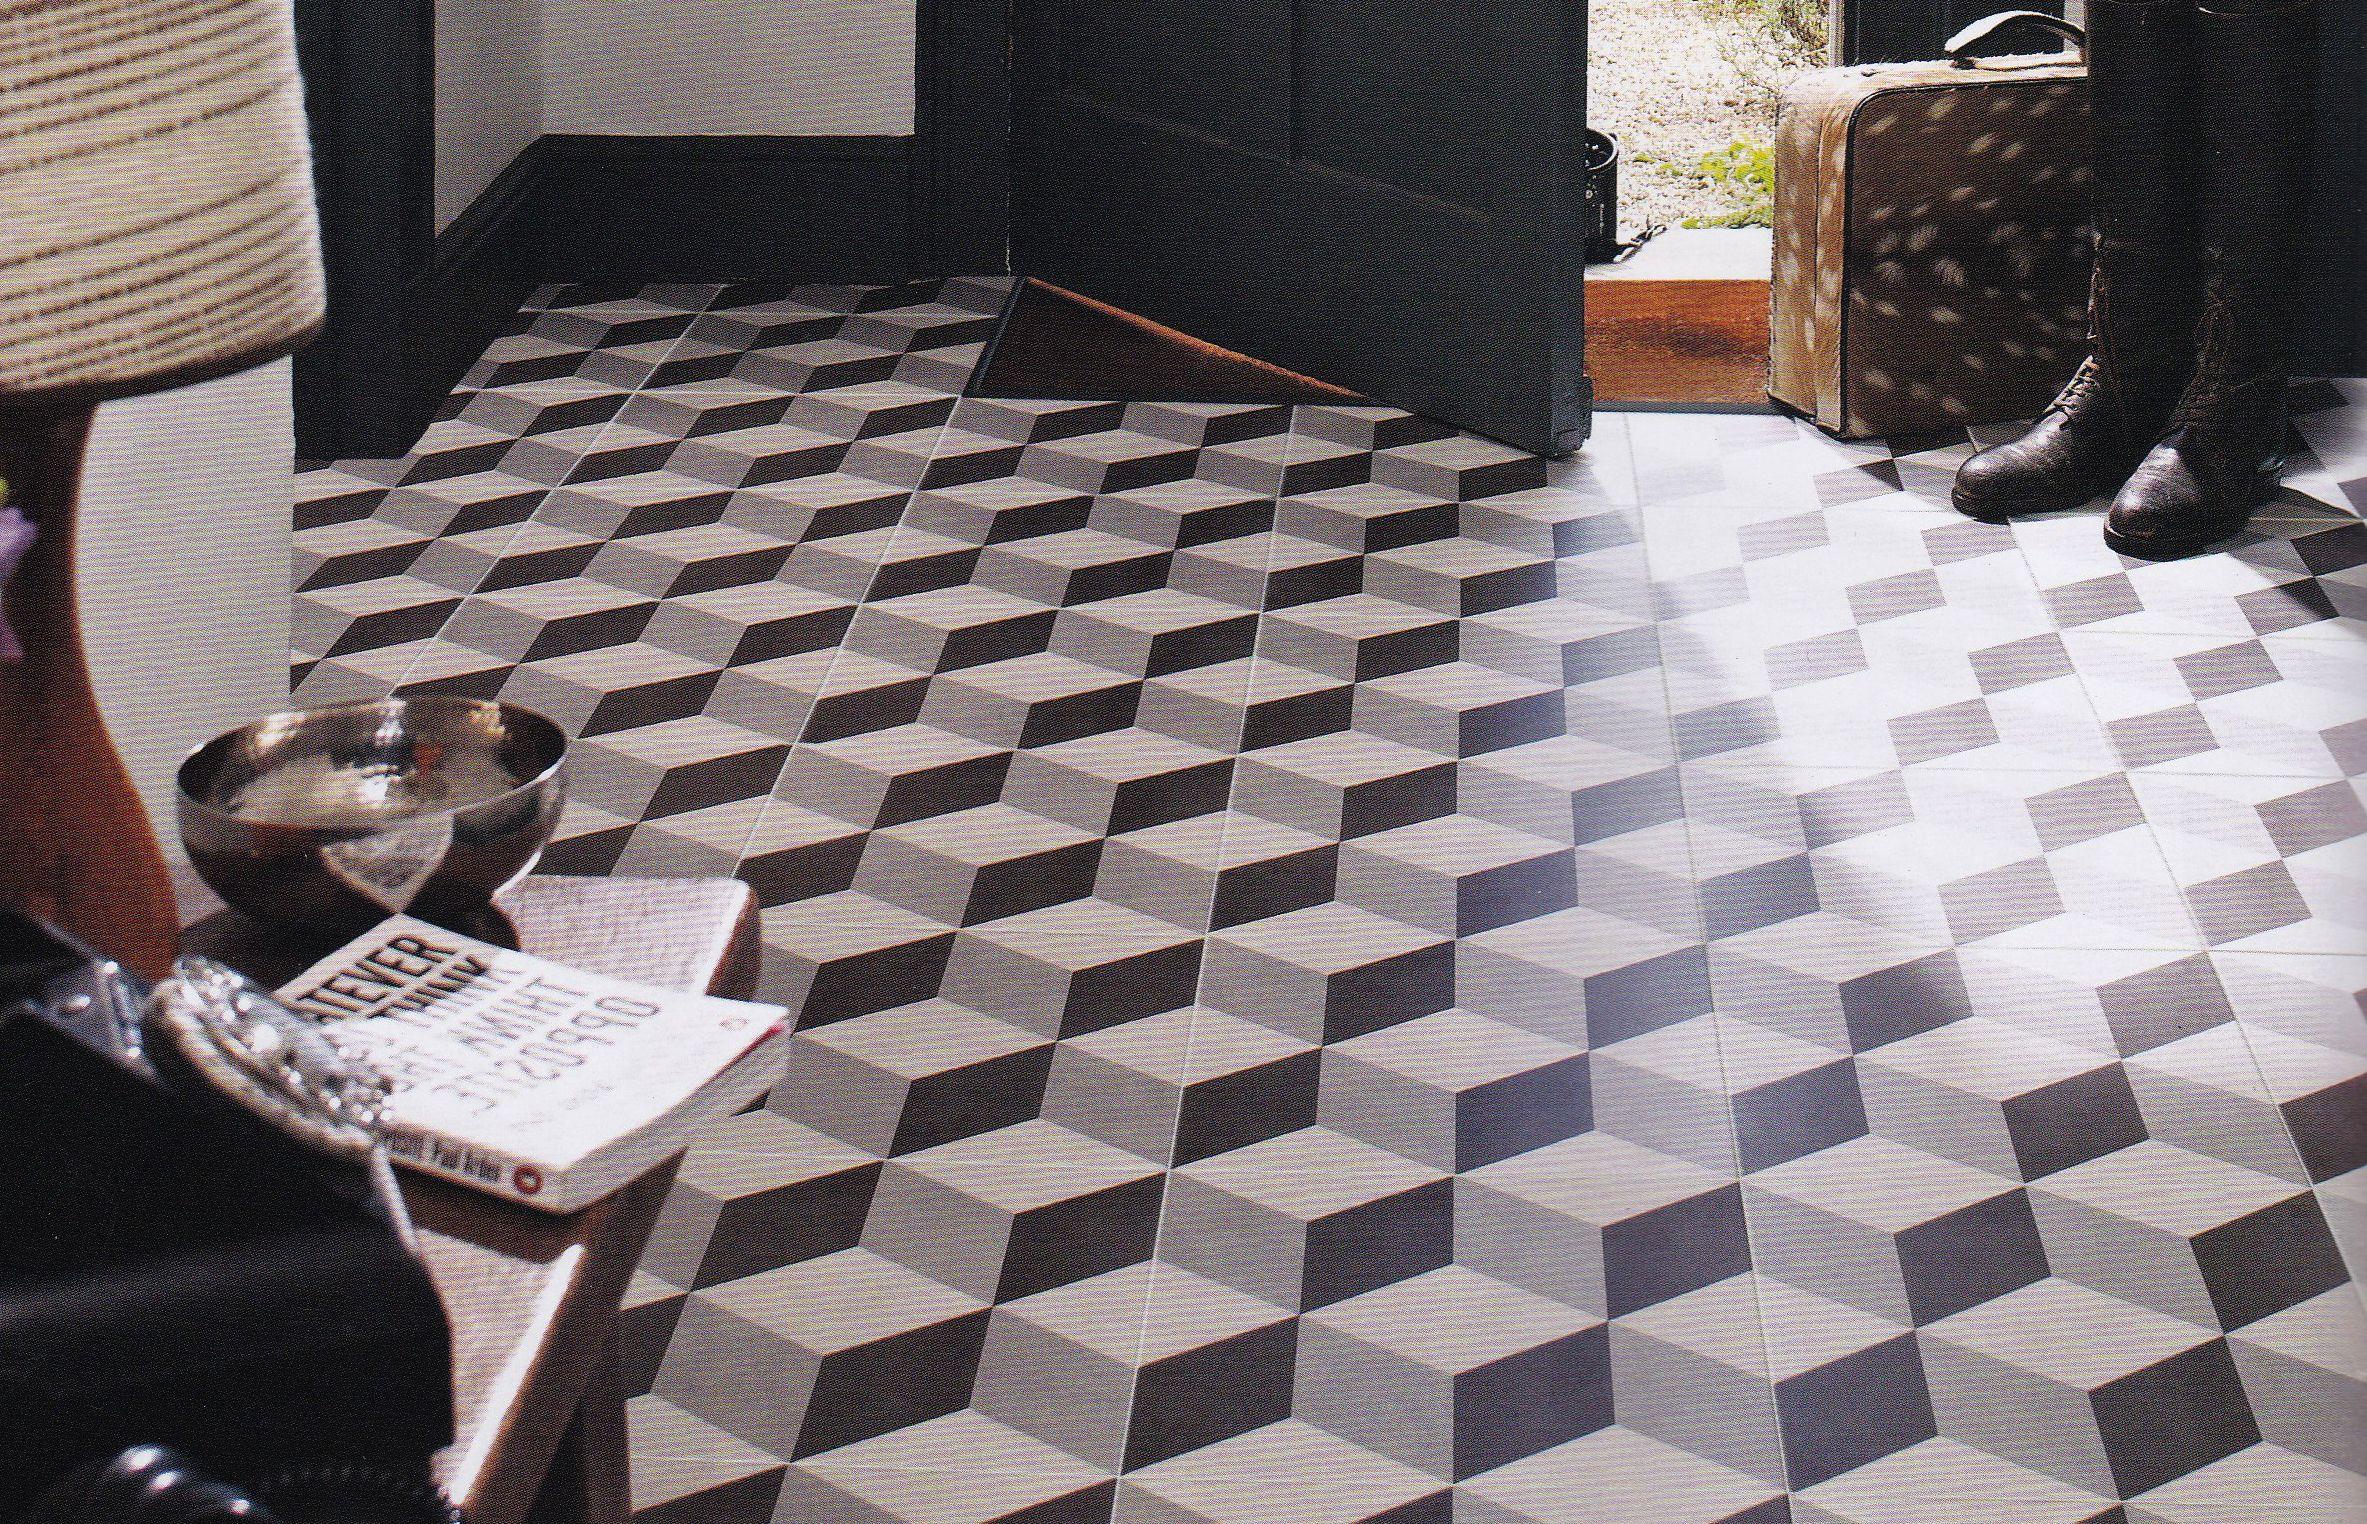 3d cube tile Google Search Geometric floor, Illusions